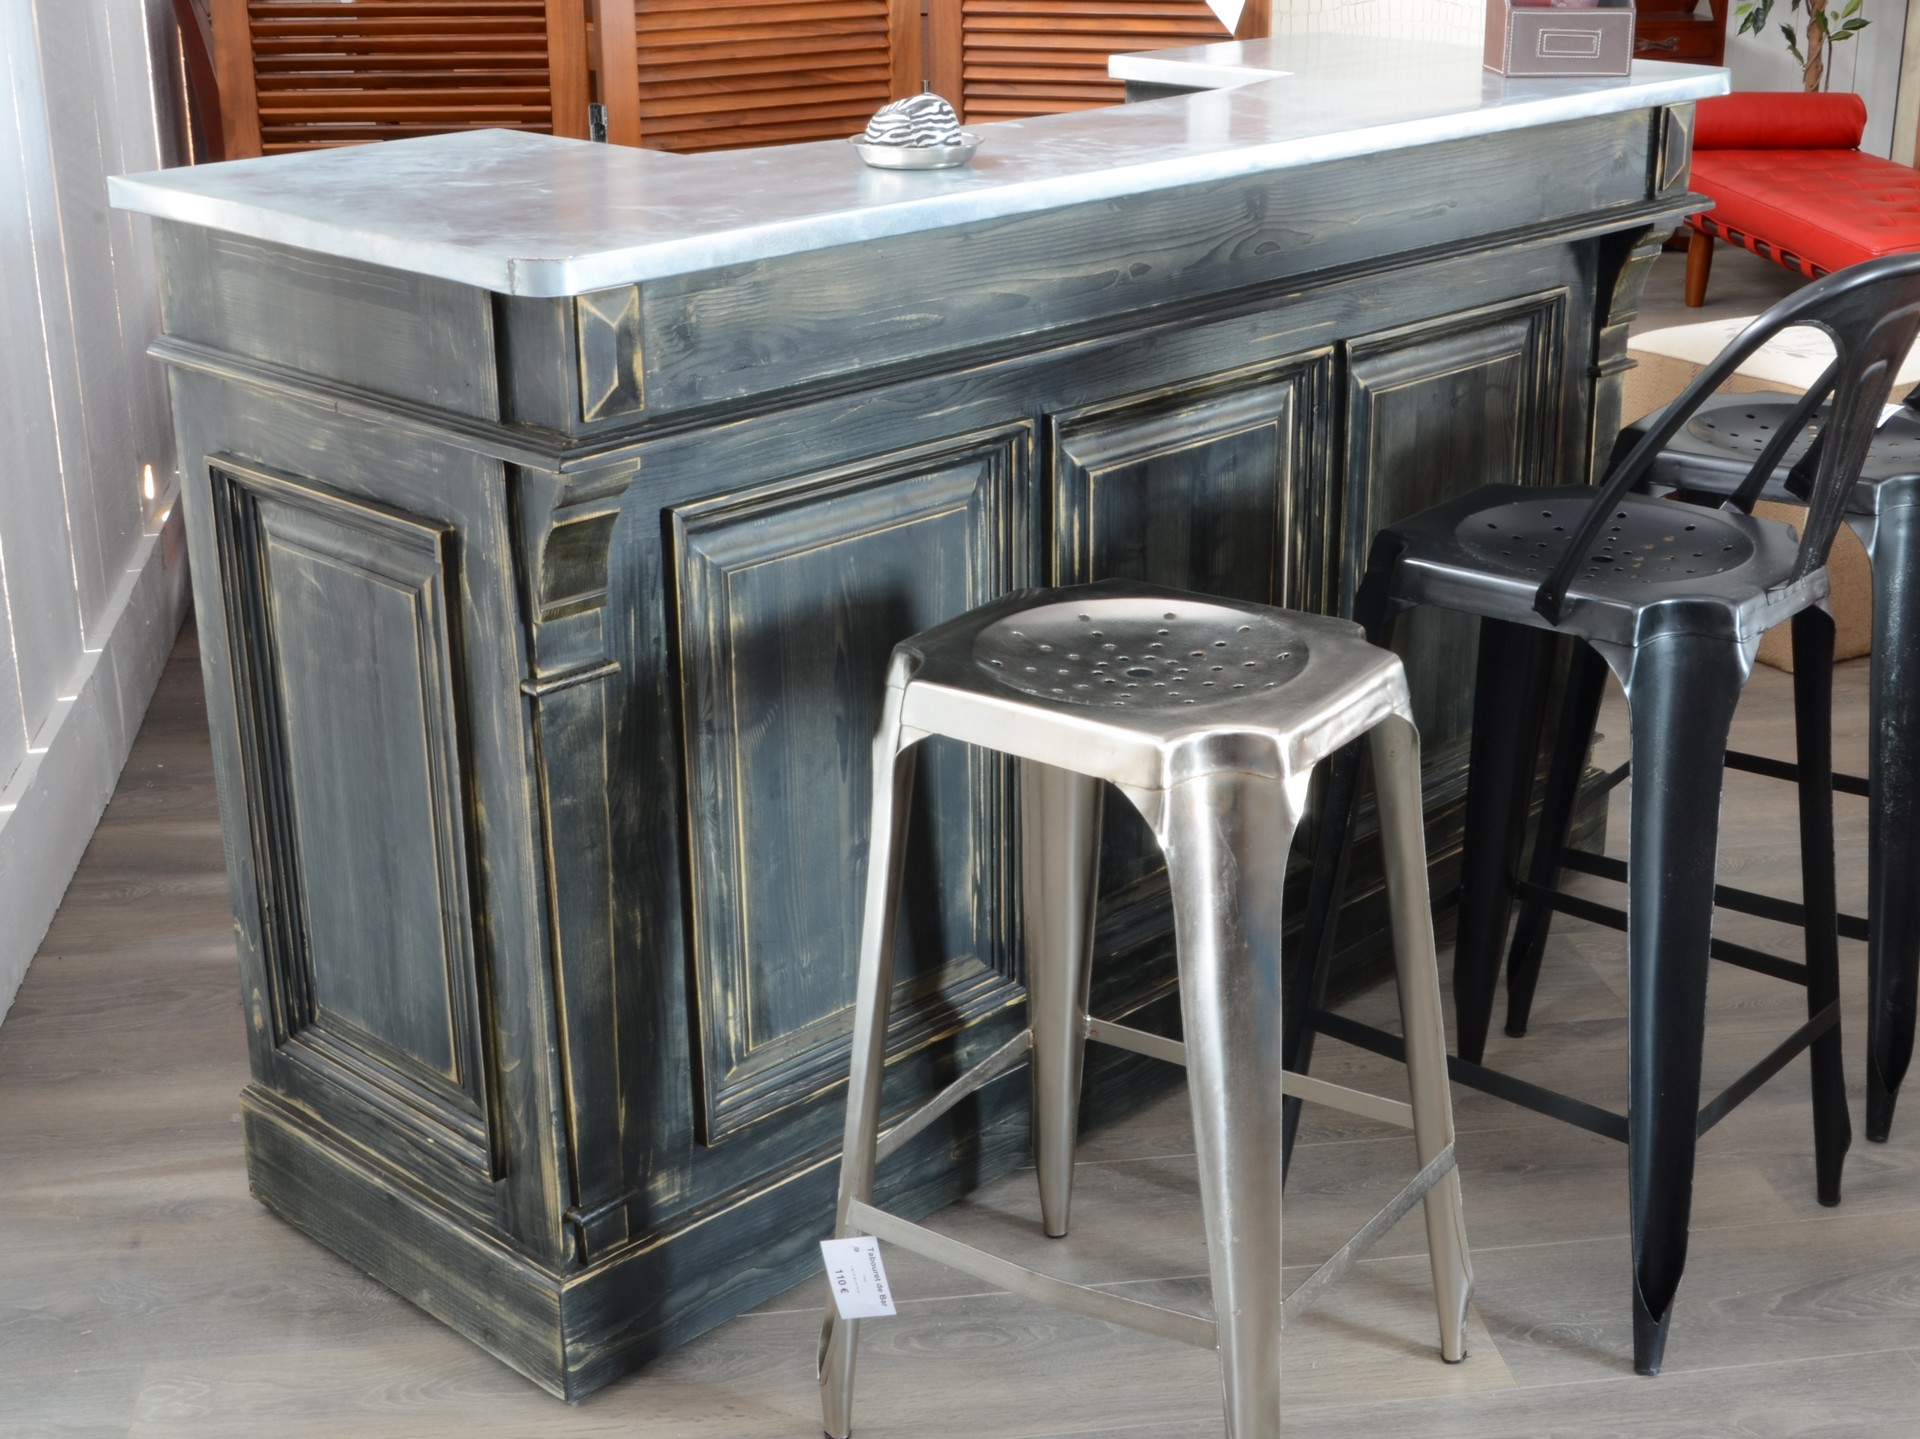 bar patin avec son comptoir en zinc dans le style art d co. Black Bedroom Furniture Sets. Home Design Ideas